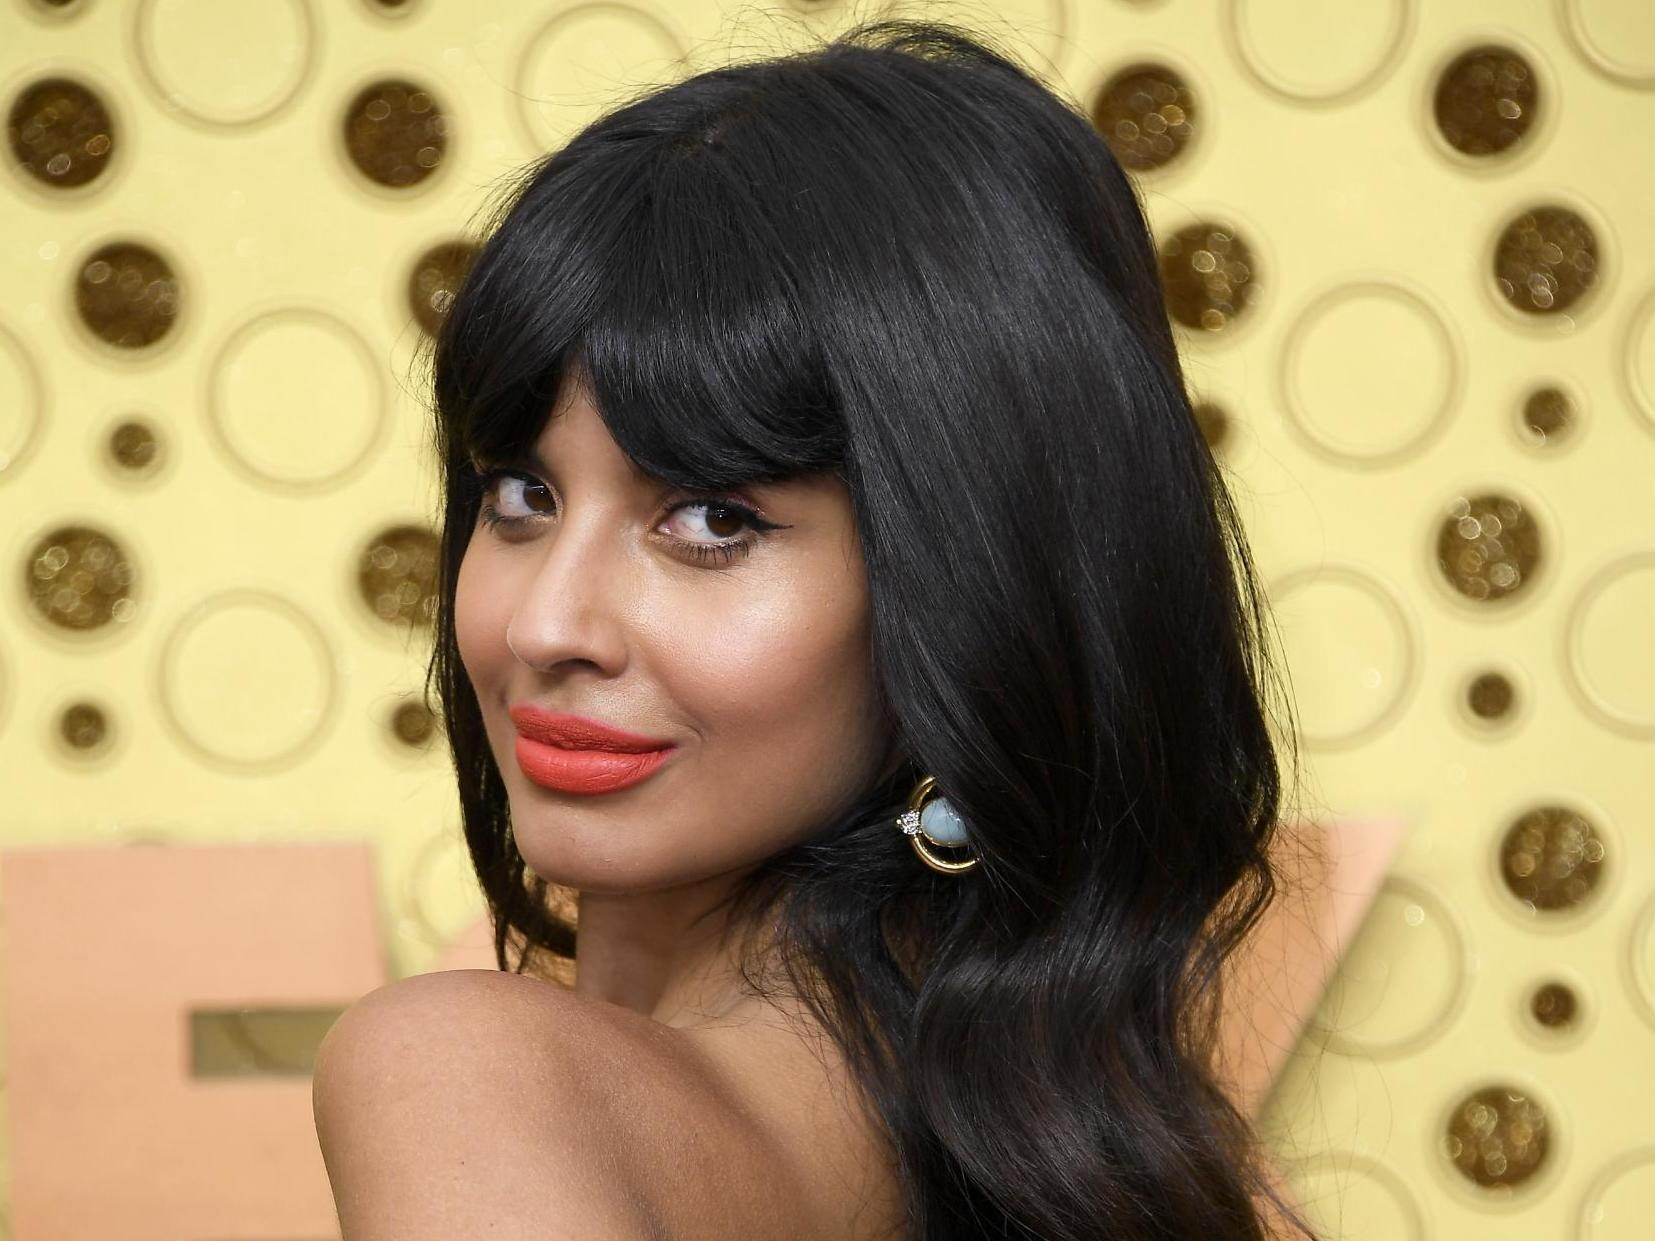 Jameela Jamil opens up about her sexuality: 'I don't just fancy cis straight men; I fancy everyone'